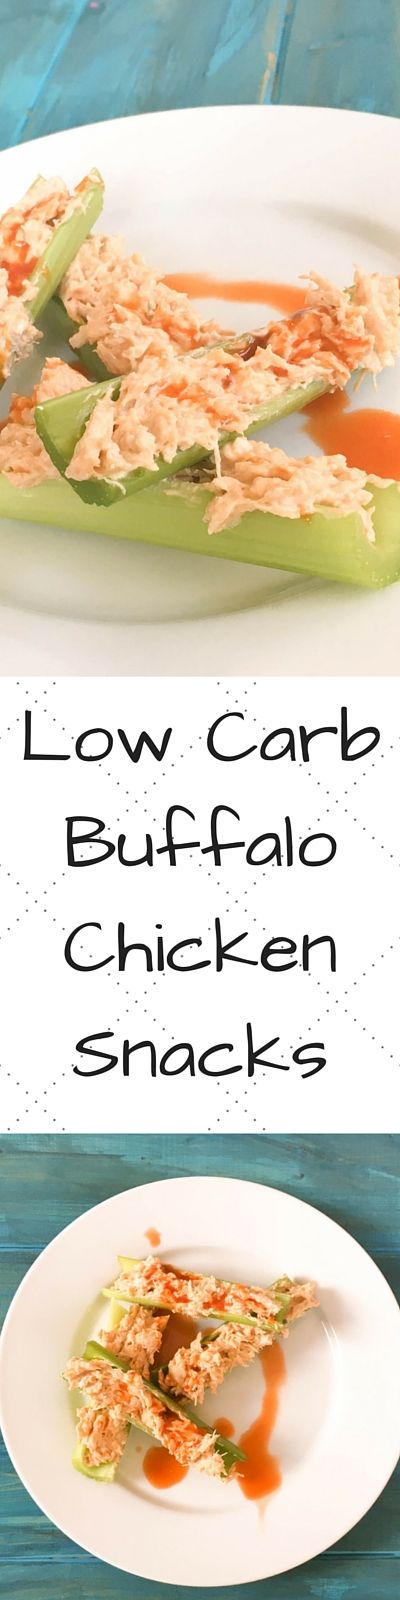 Low carb Buffalo Chicken snacks are a perfect alternative to the heavy dips and chip options. Spice up your lunchbox with these low carb spicy buffalo and cheese snacks